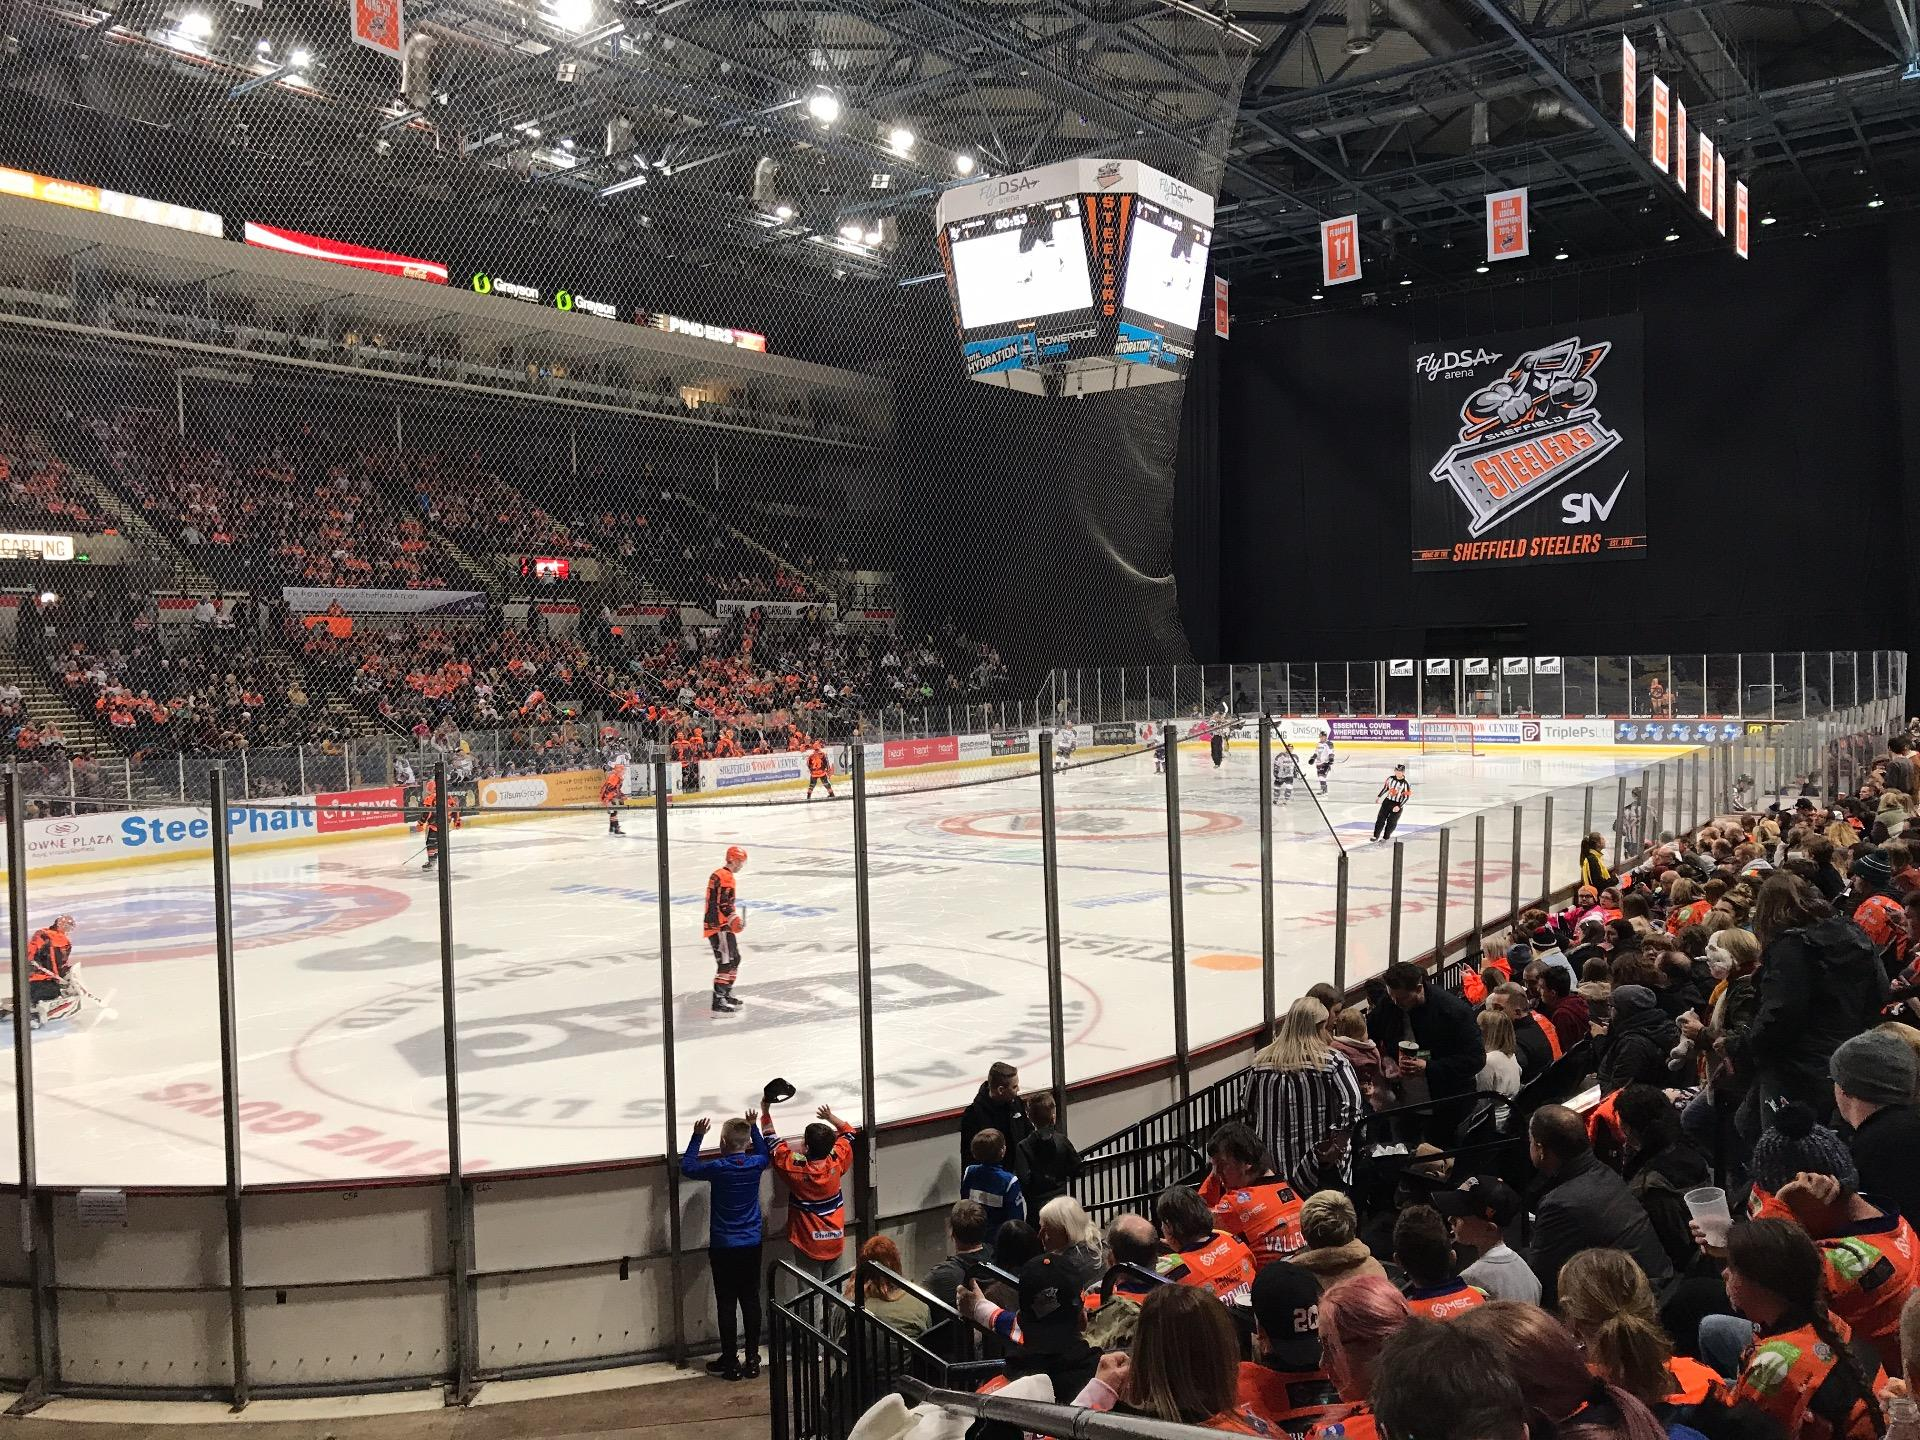 Sheffield Arena Section 114 Row K Seat 2